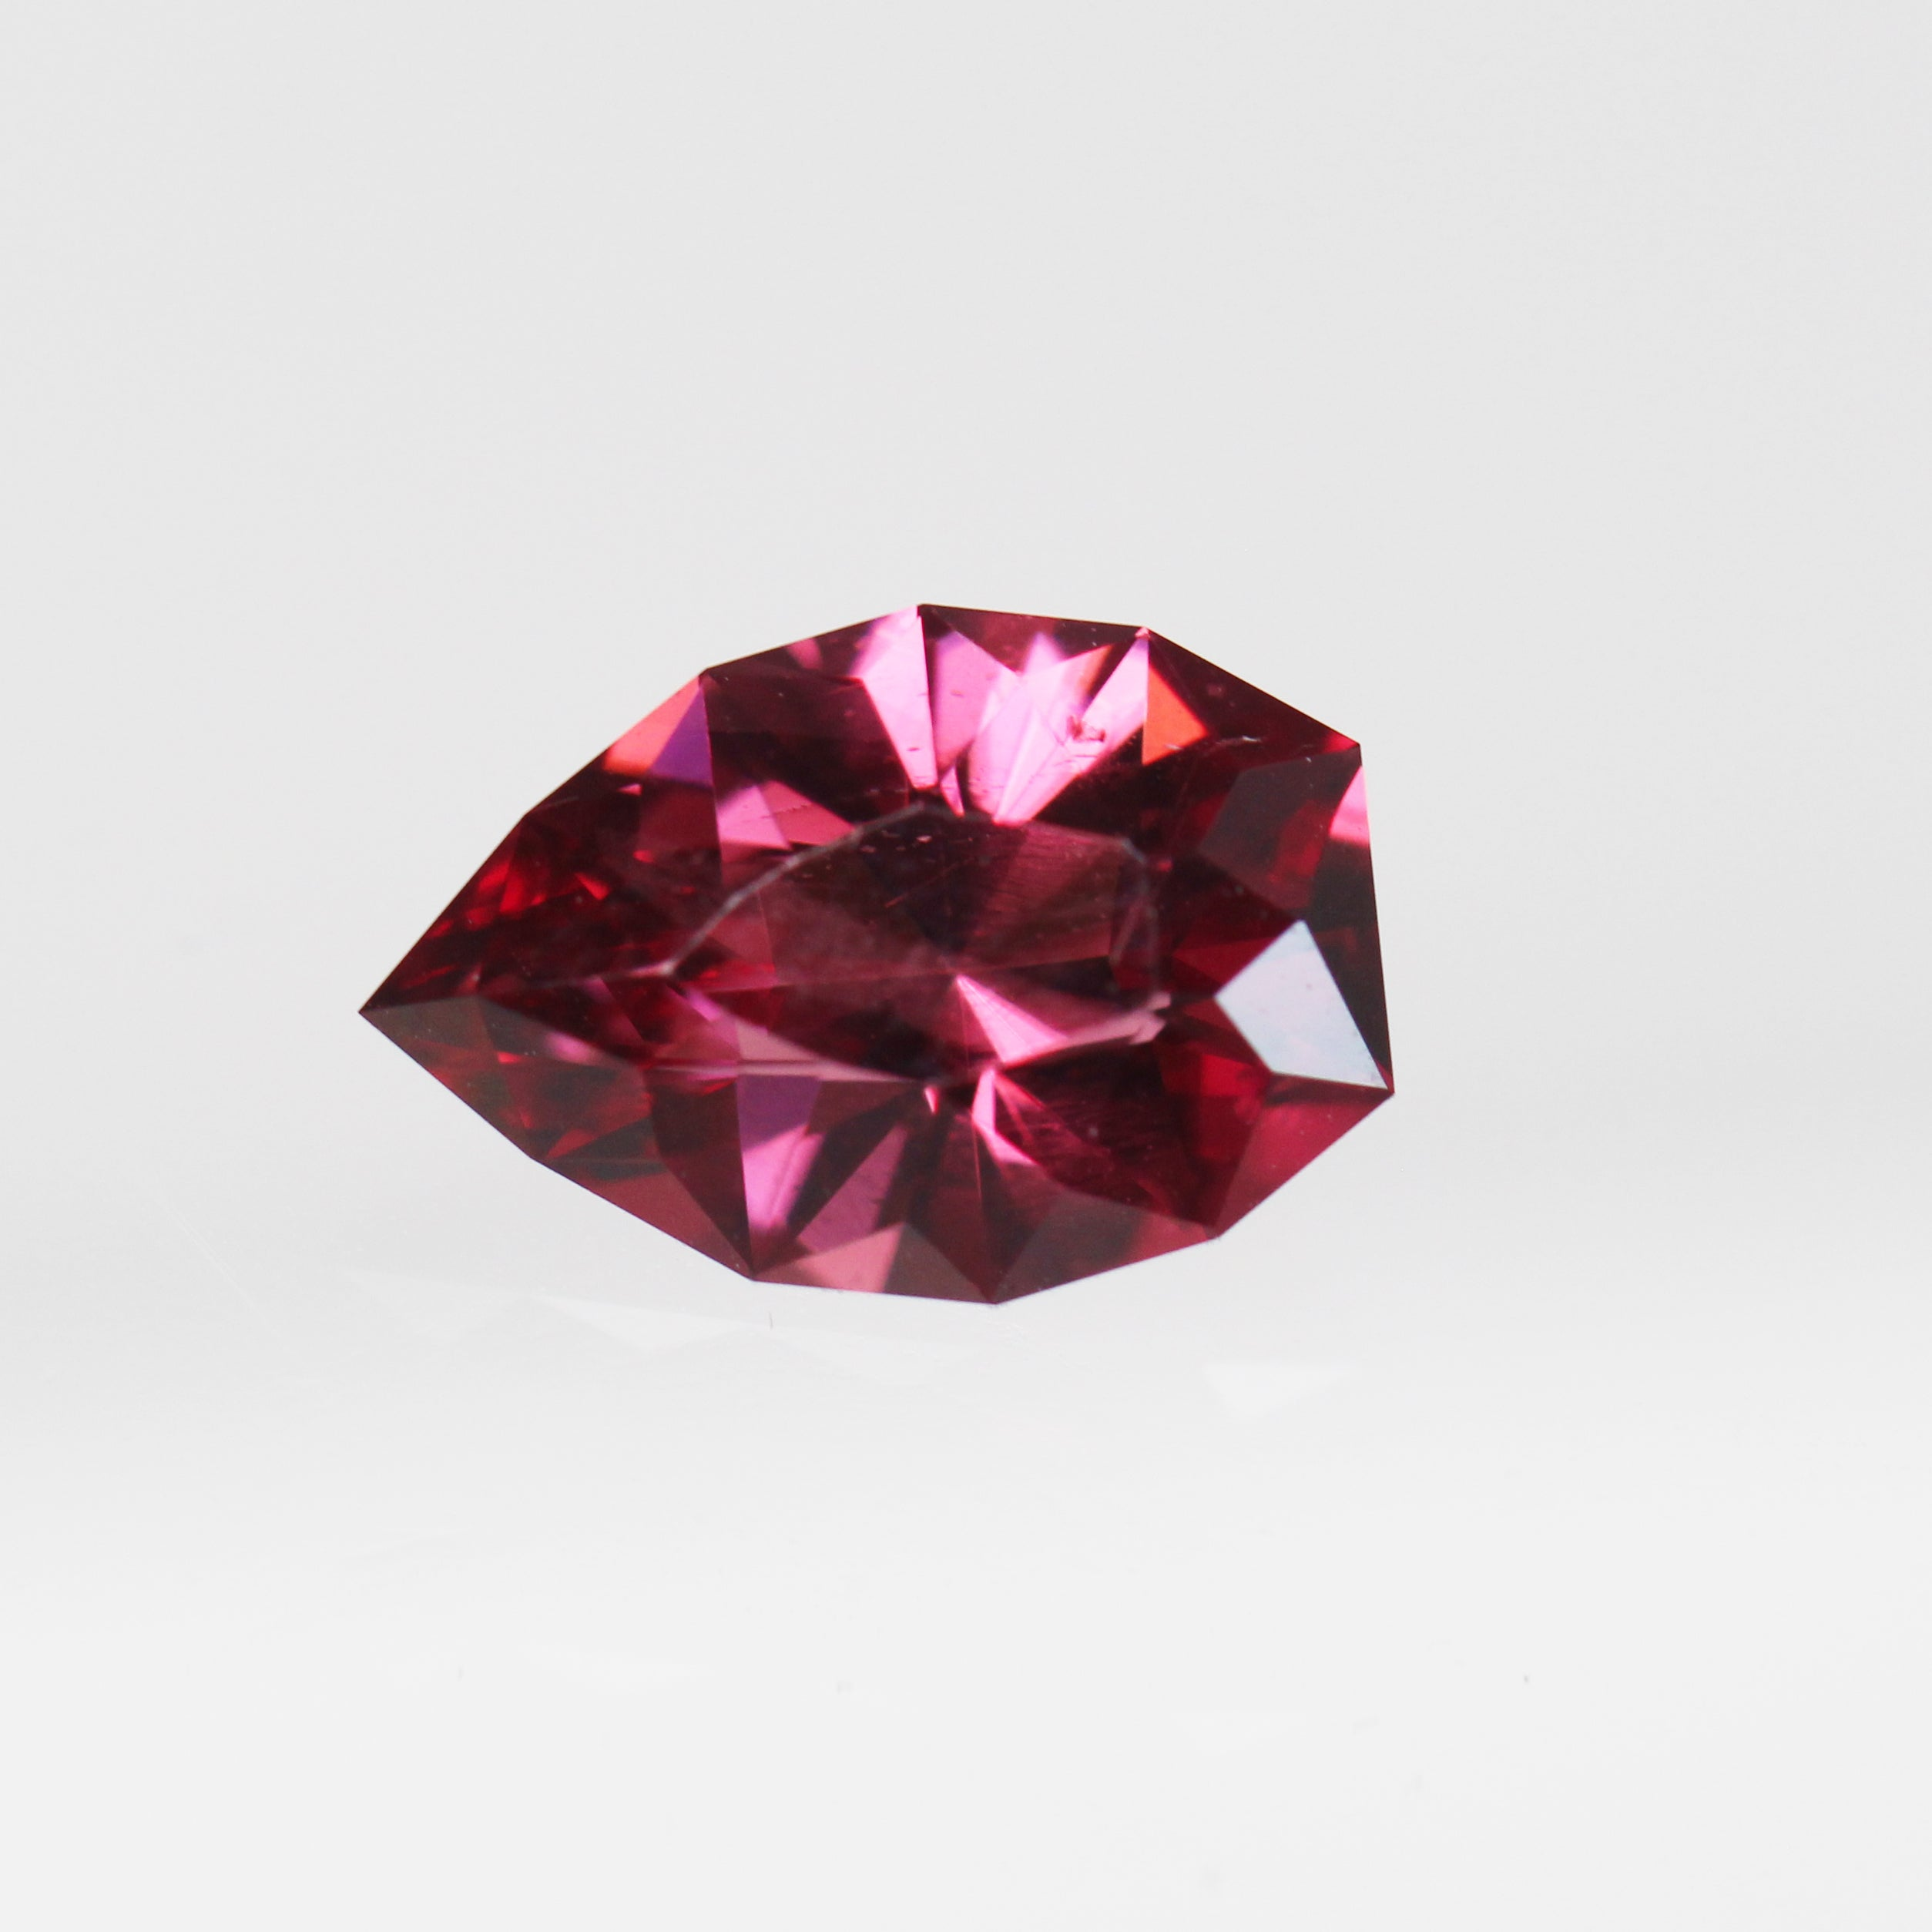 2.30 Carat Geometric Pear Garnet for Custom Work - Inventory Code GPG230 - Celestial Diamonds ® by Midwinter Co.